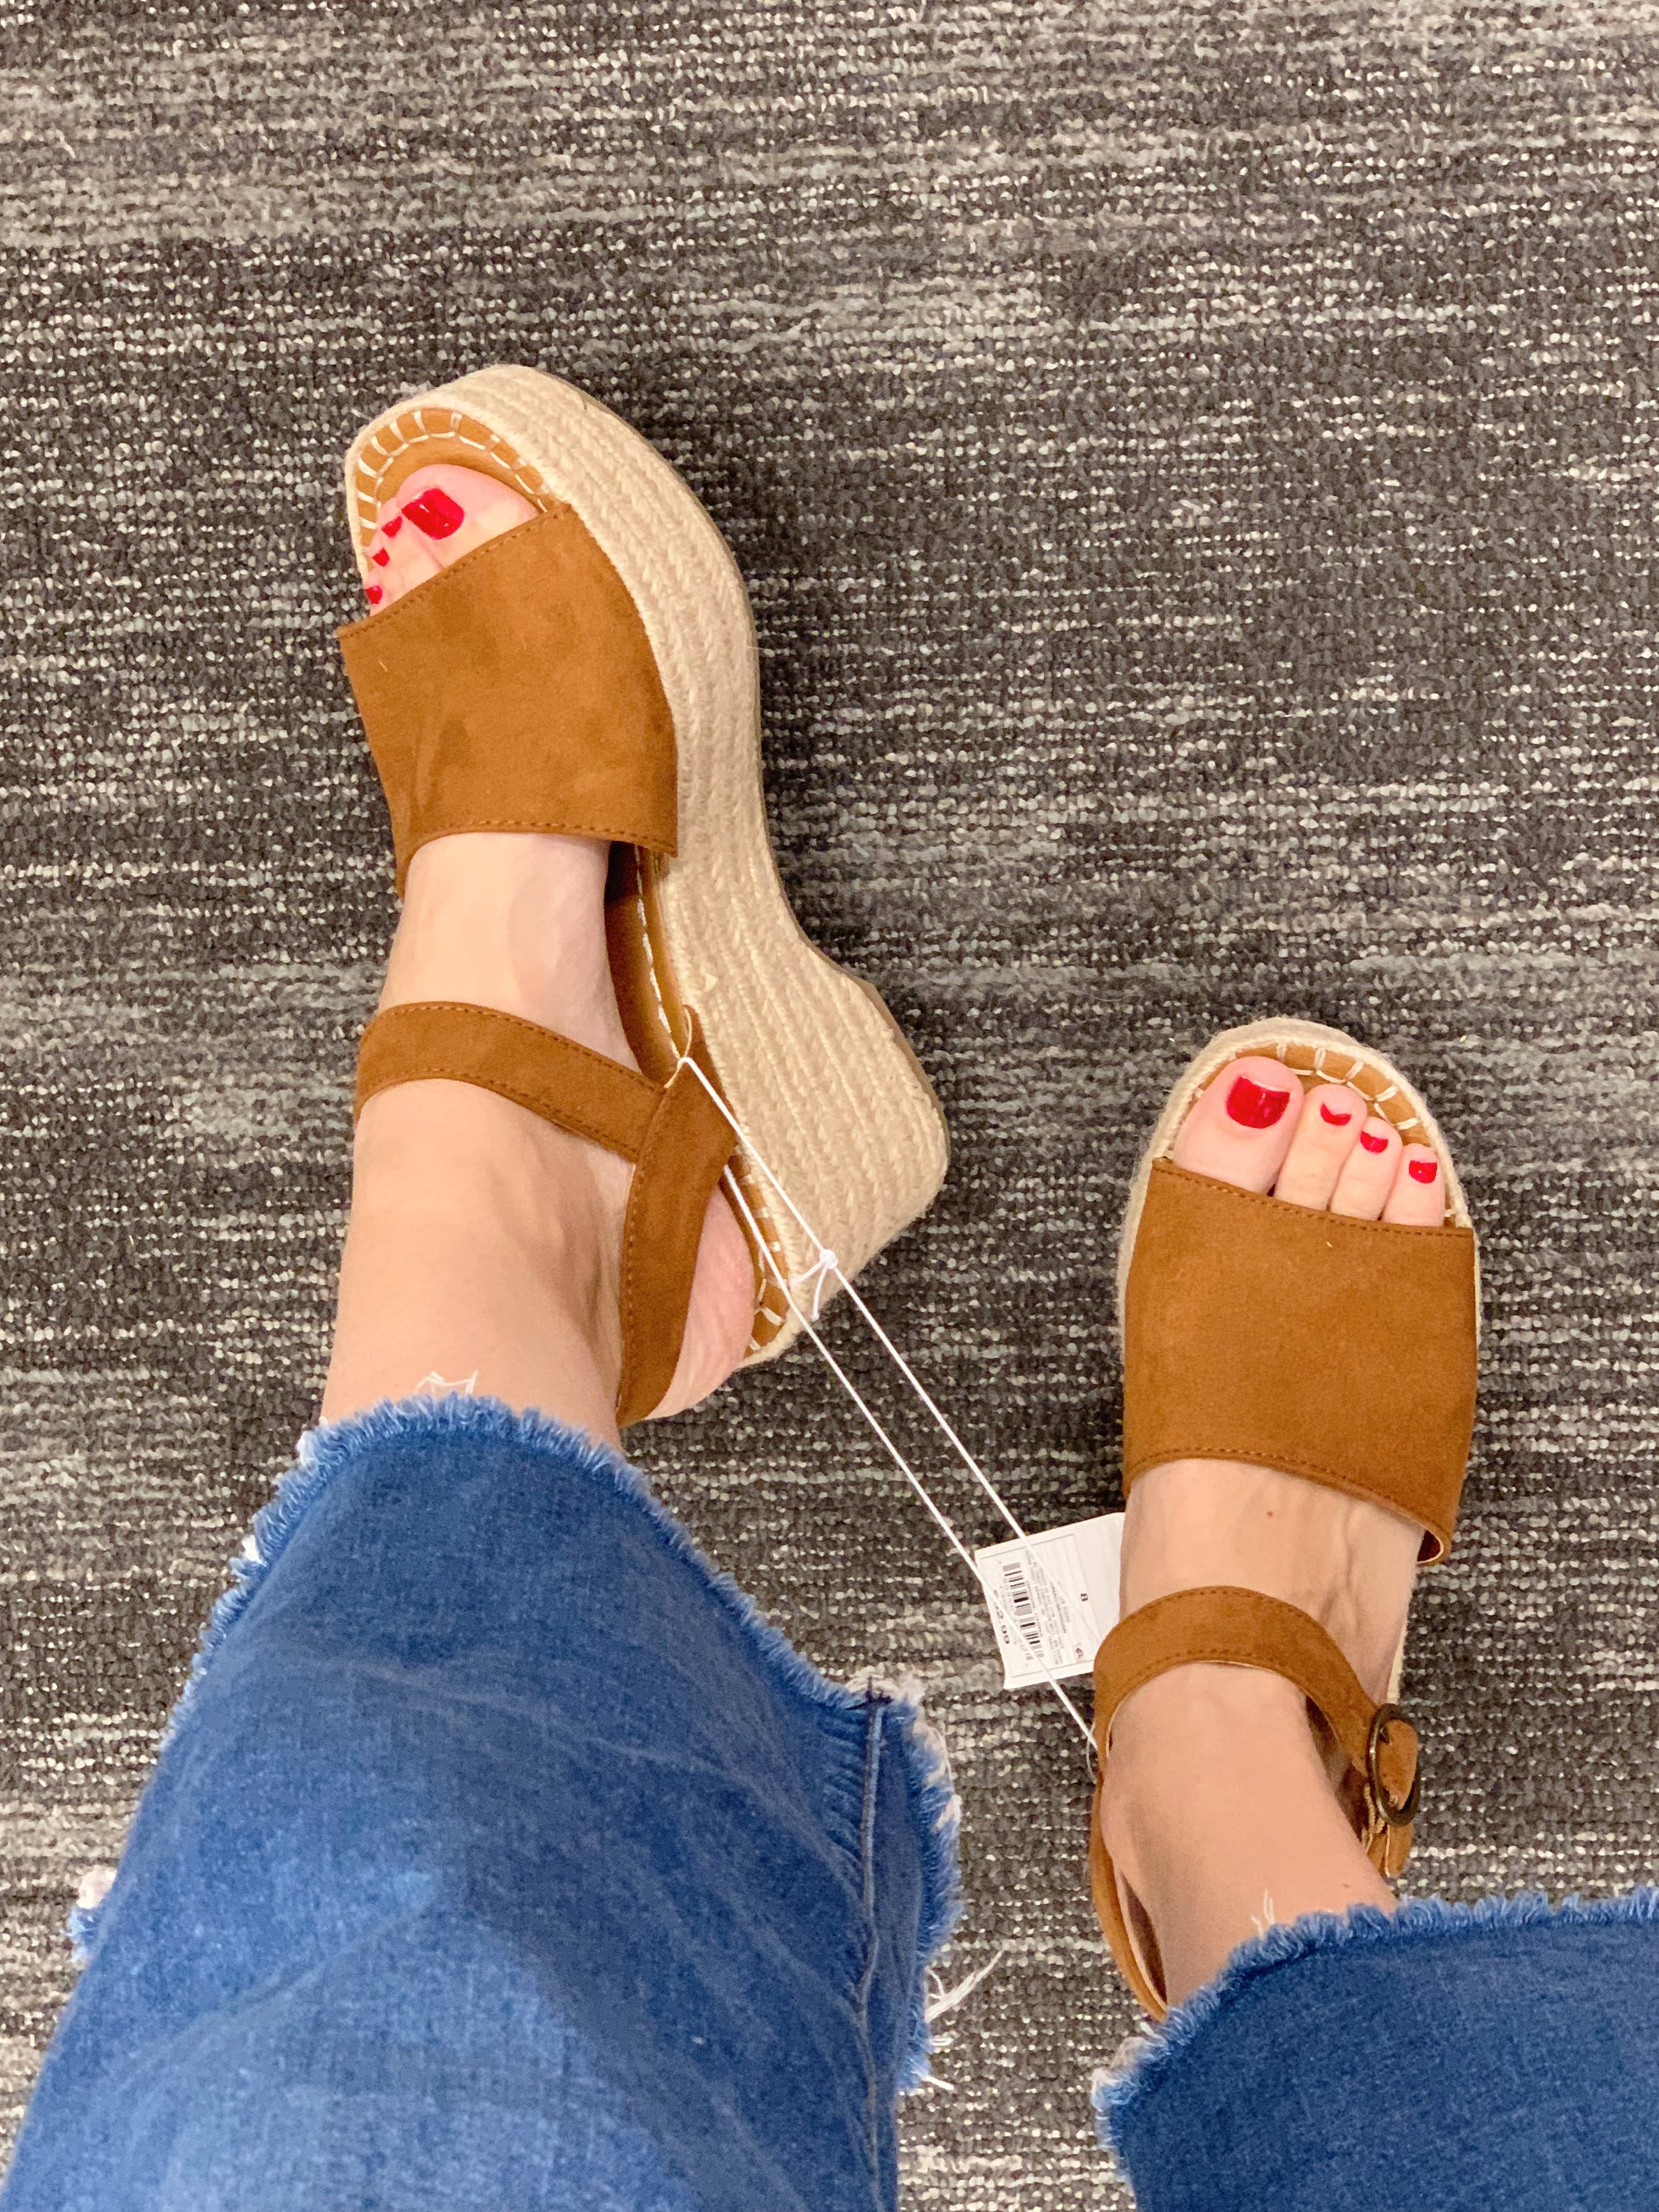 I have been admiring these at a distance for a few weeks and finally decided to try them on today. I love a platform espadrille and these were really comfortable too. They also come in blue, black, orange and leopard (which is sold out online).